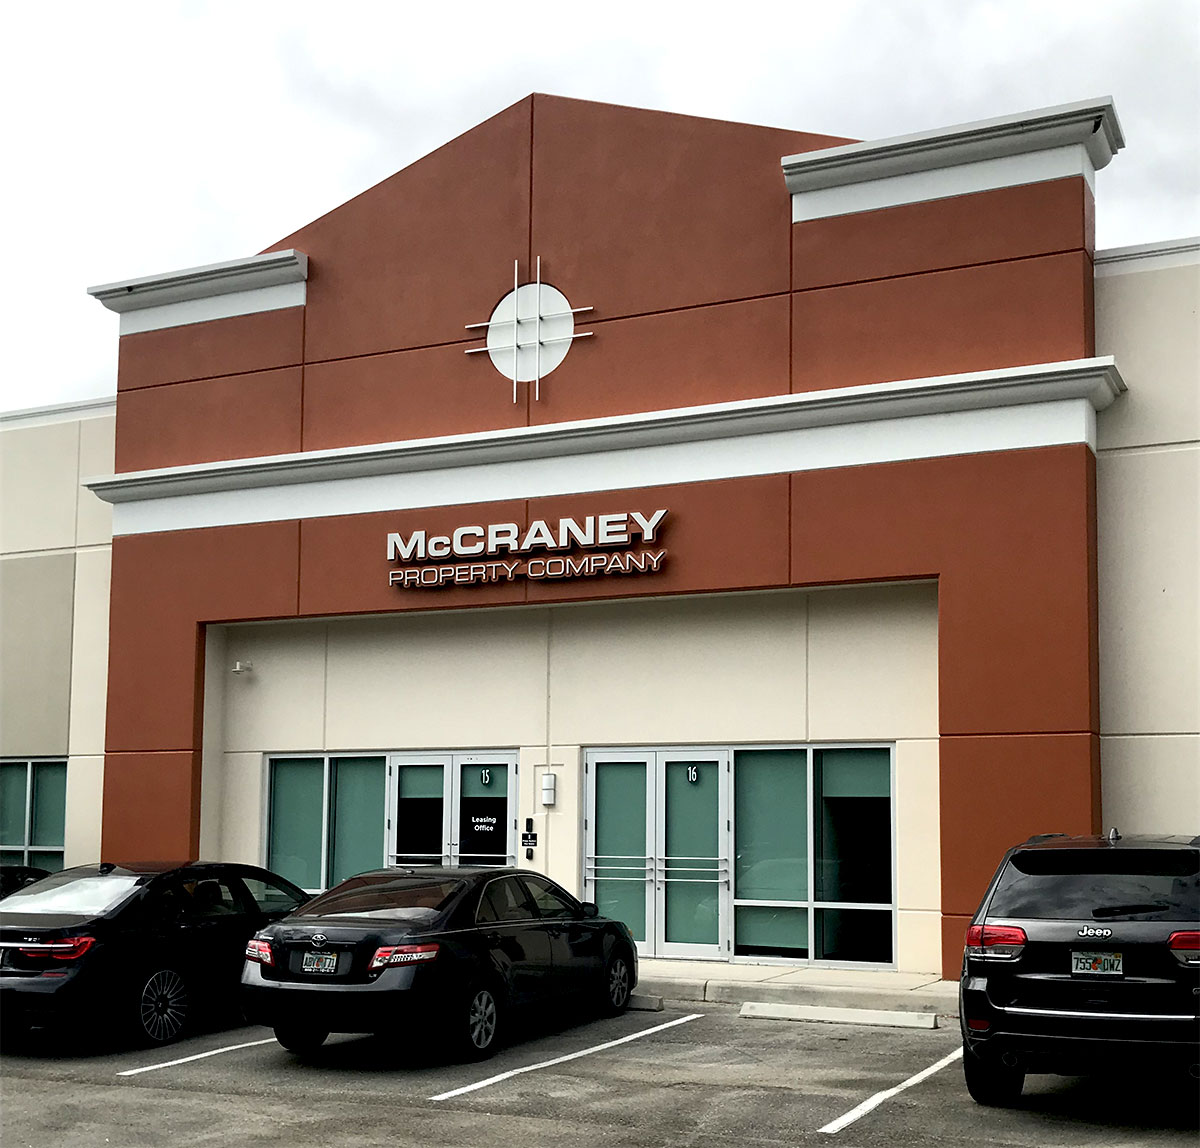 McCraney Property